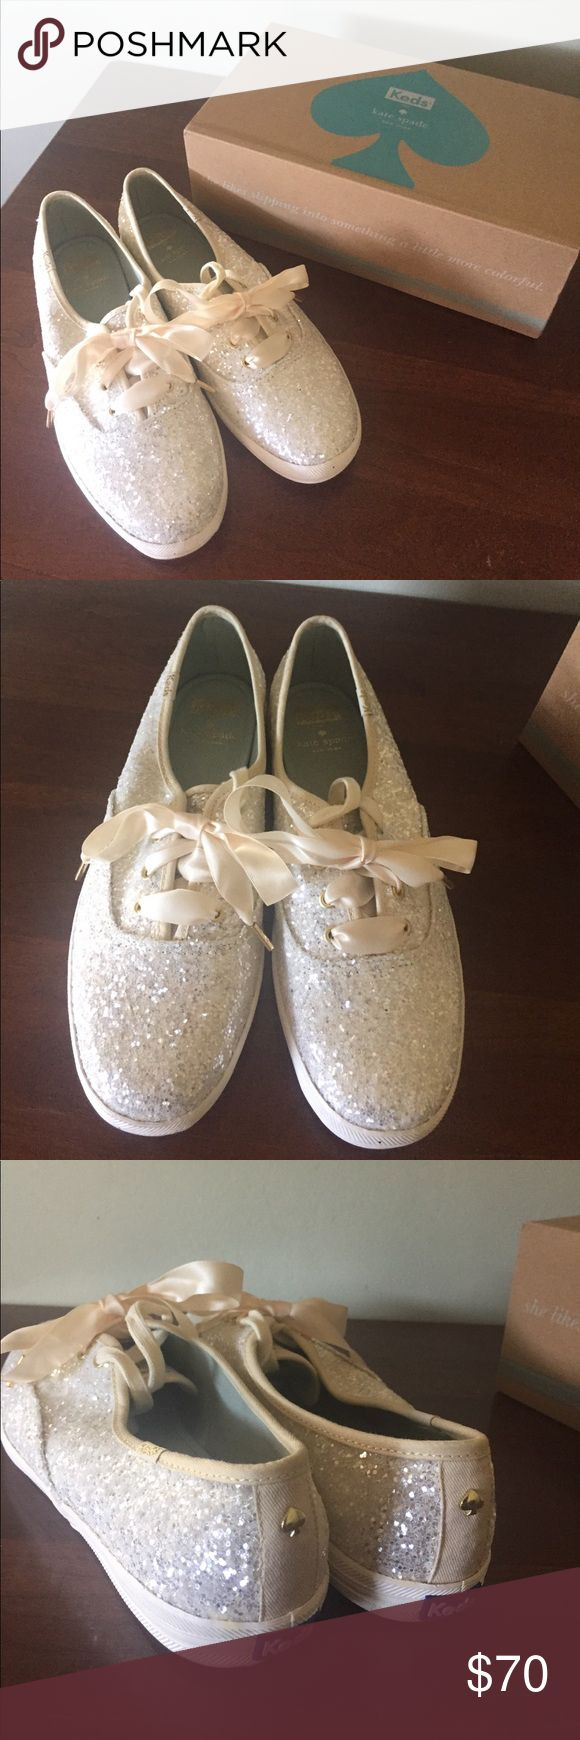 Kate Spade Keds Bought these for my wedding day but didn't end up using them, brand new, sparkly Kate Spade tennis shoes by Keds. kate spade Shoes Sneakers